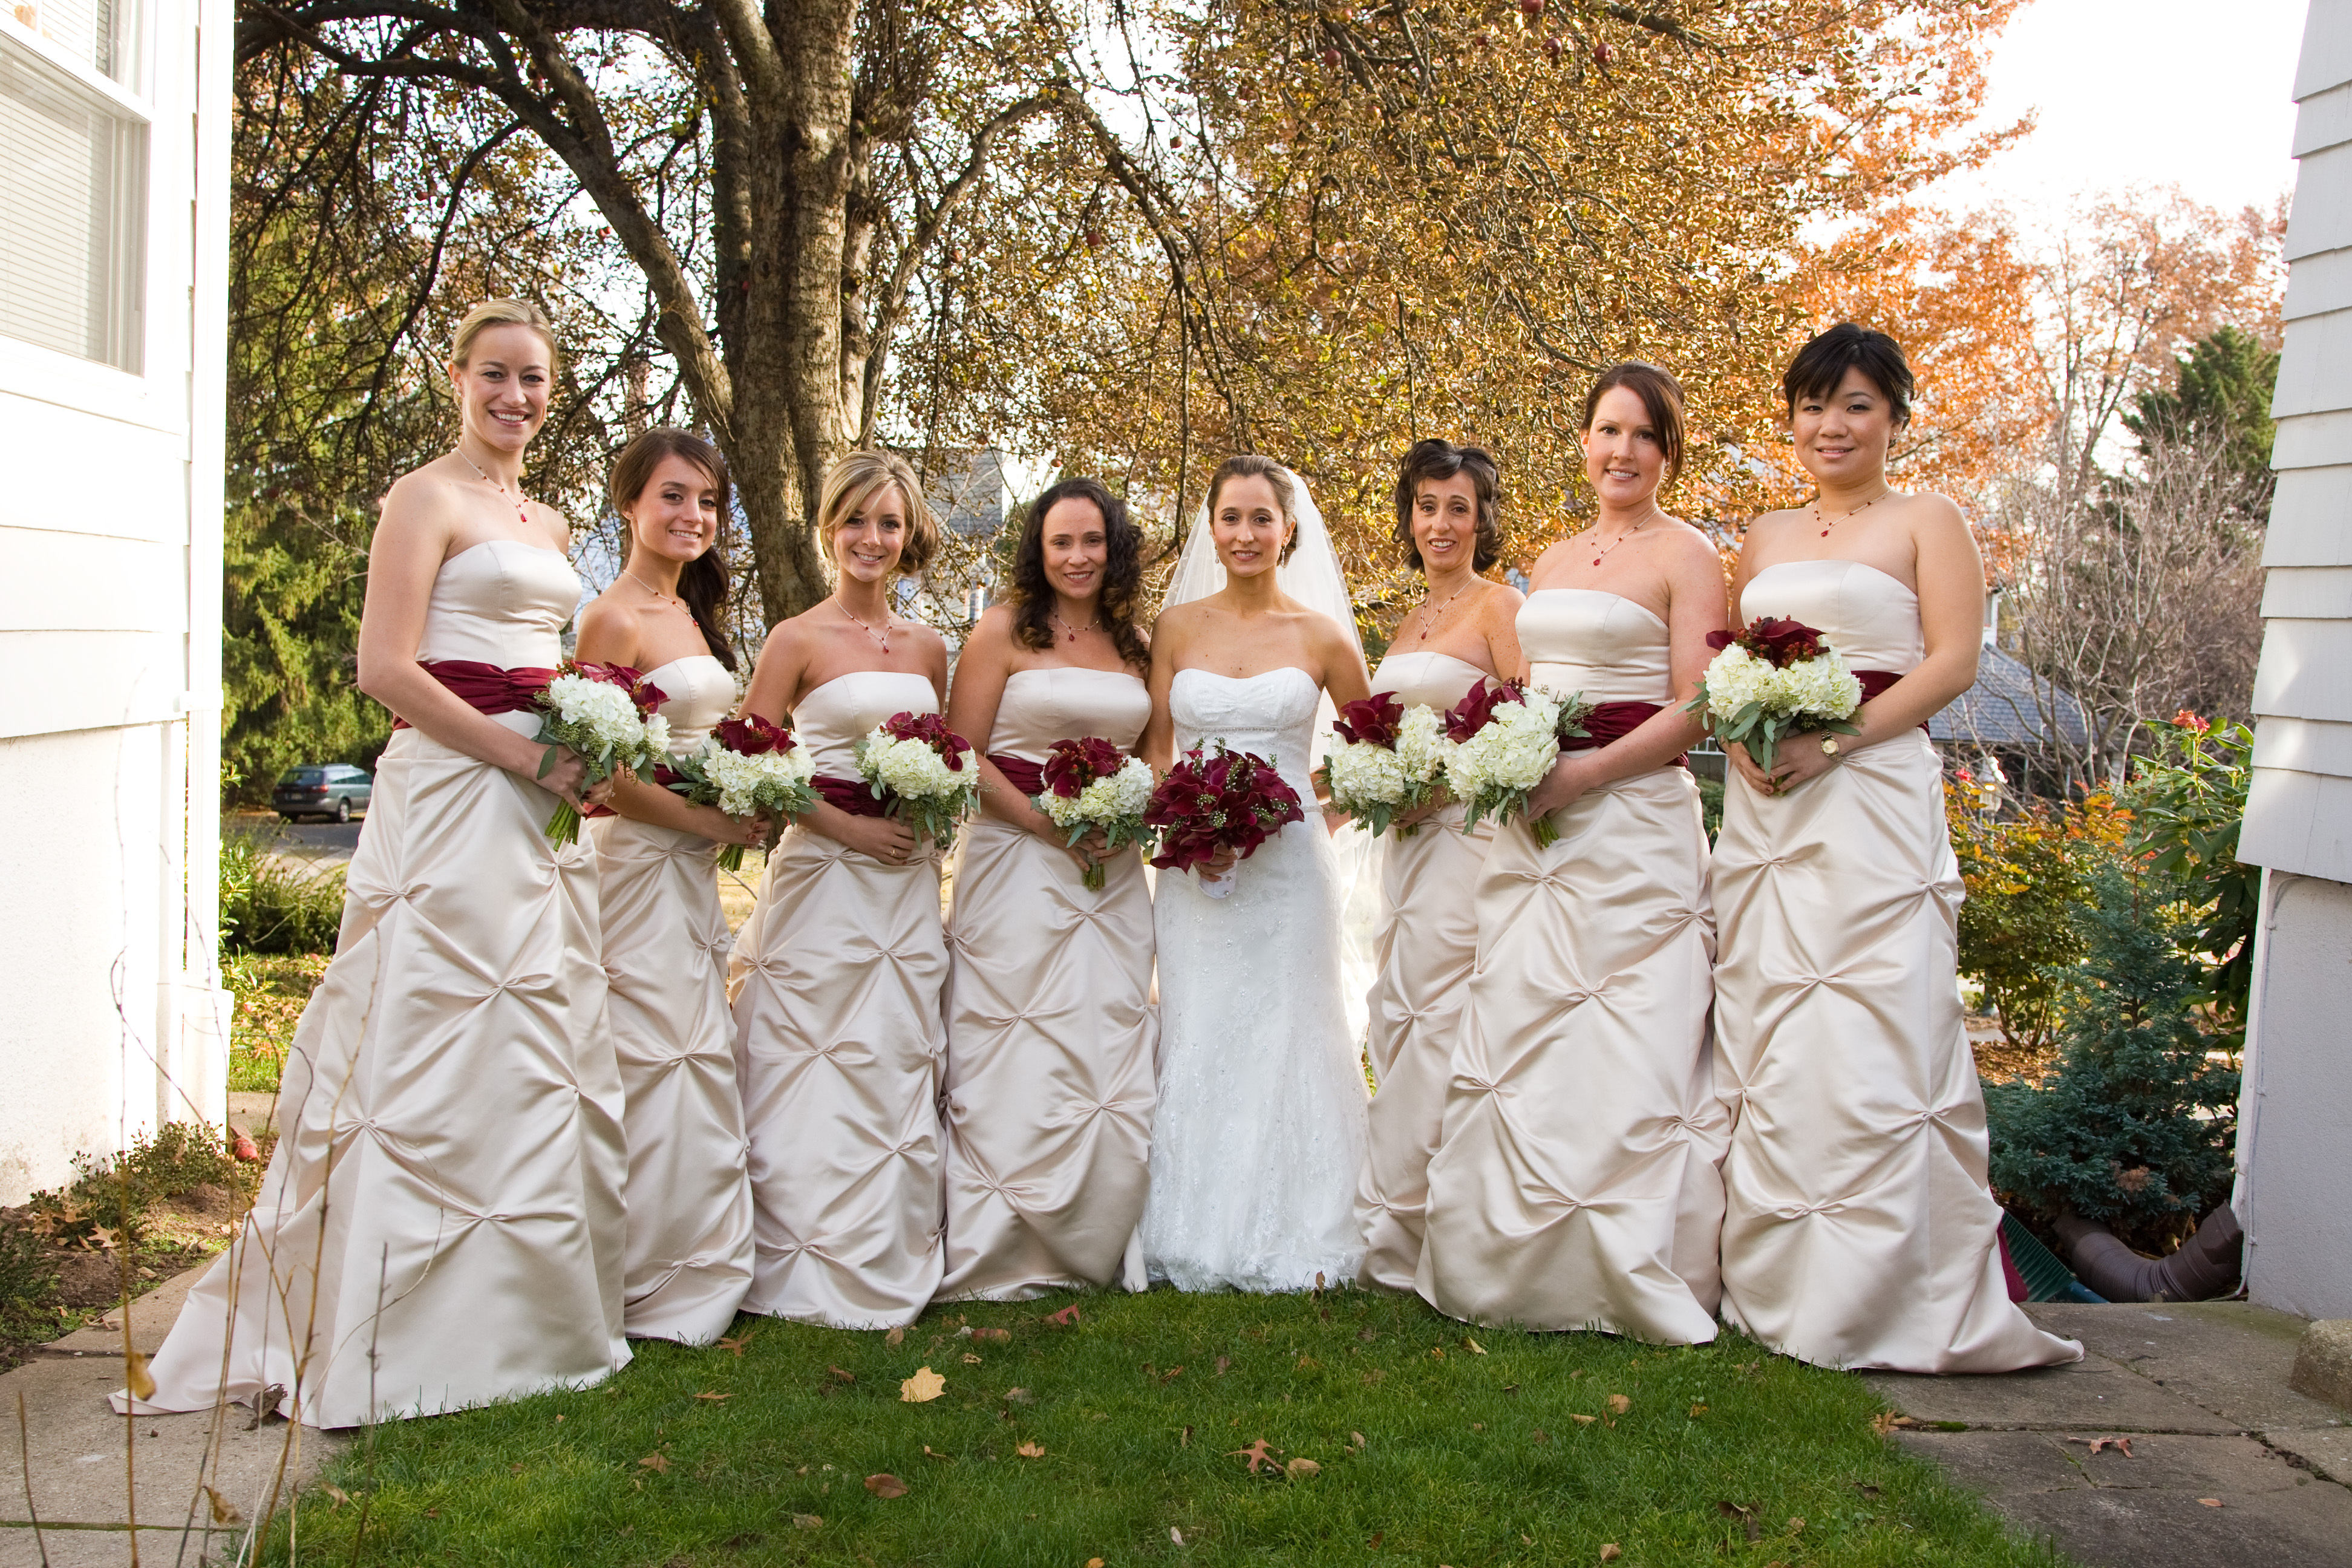 Bridesmaids, Bridesmaids Dresses, Fashion, white, red, Bride